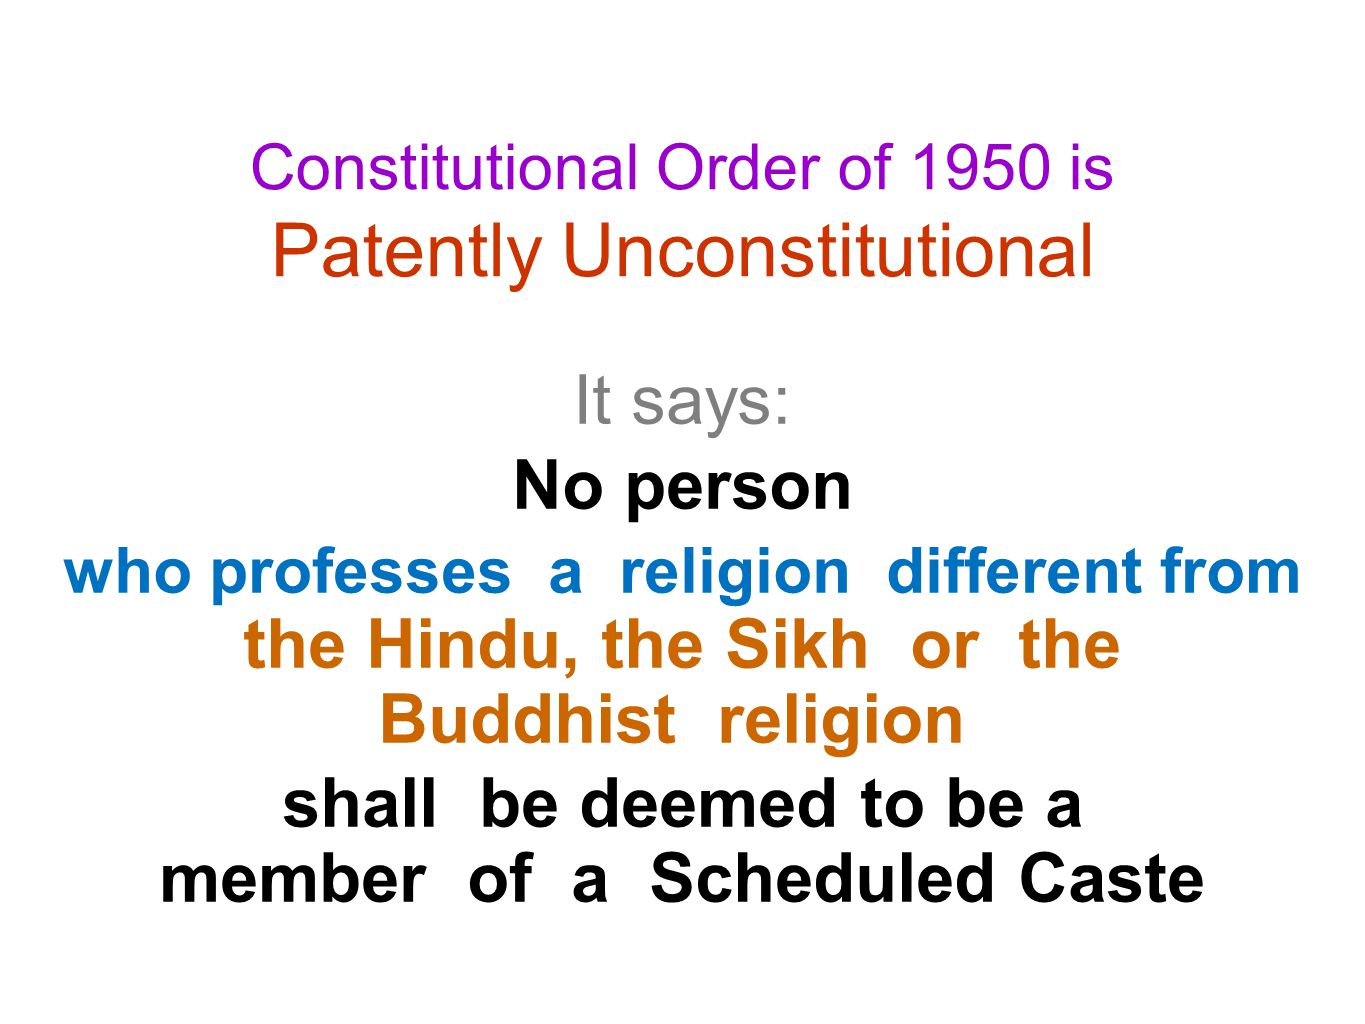 As per section 23 of the Wakf Act the CEOs of State Wake Boards have to be Muslim.